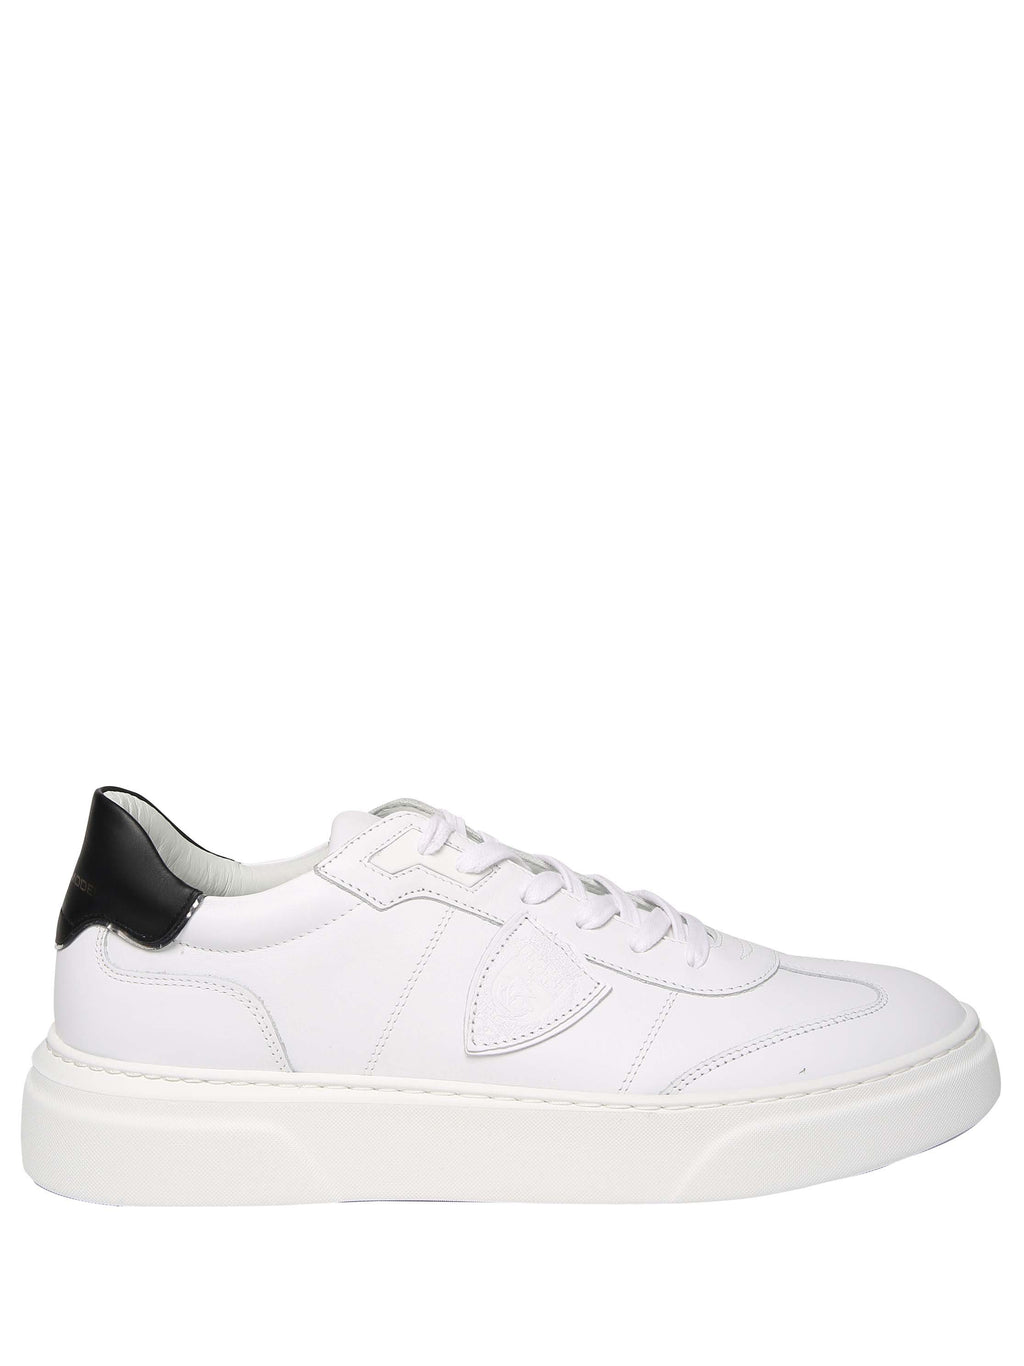 PHILIPPE MODEL Temple model leather sneakers